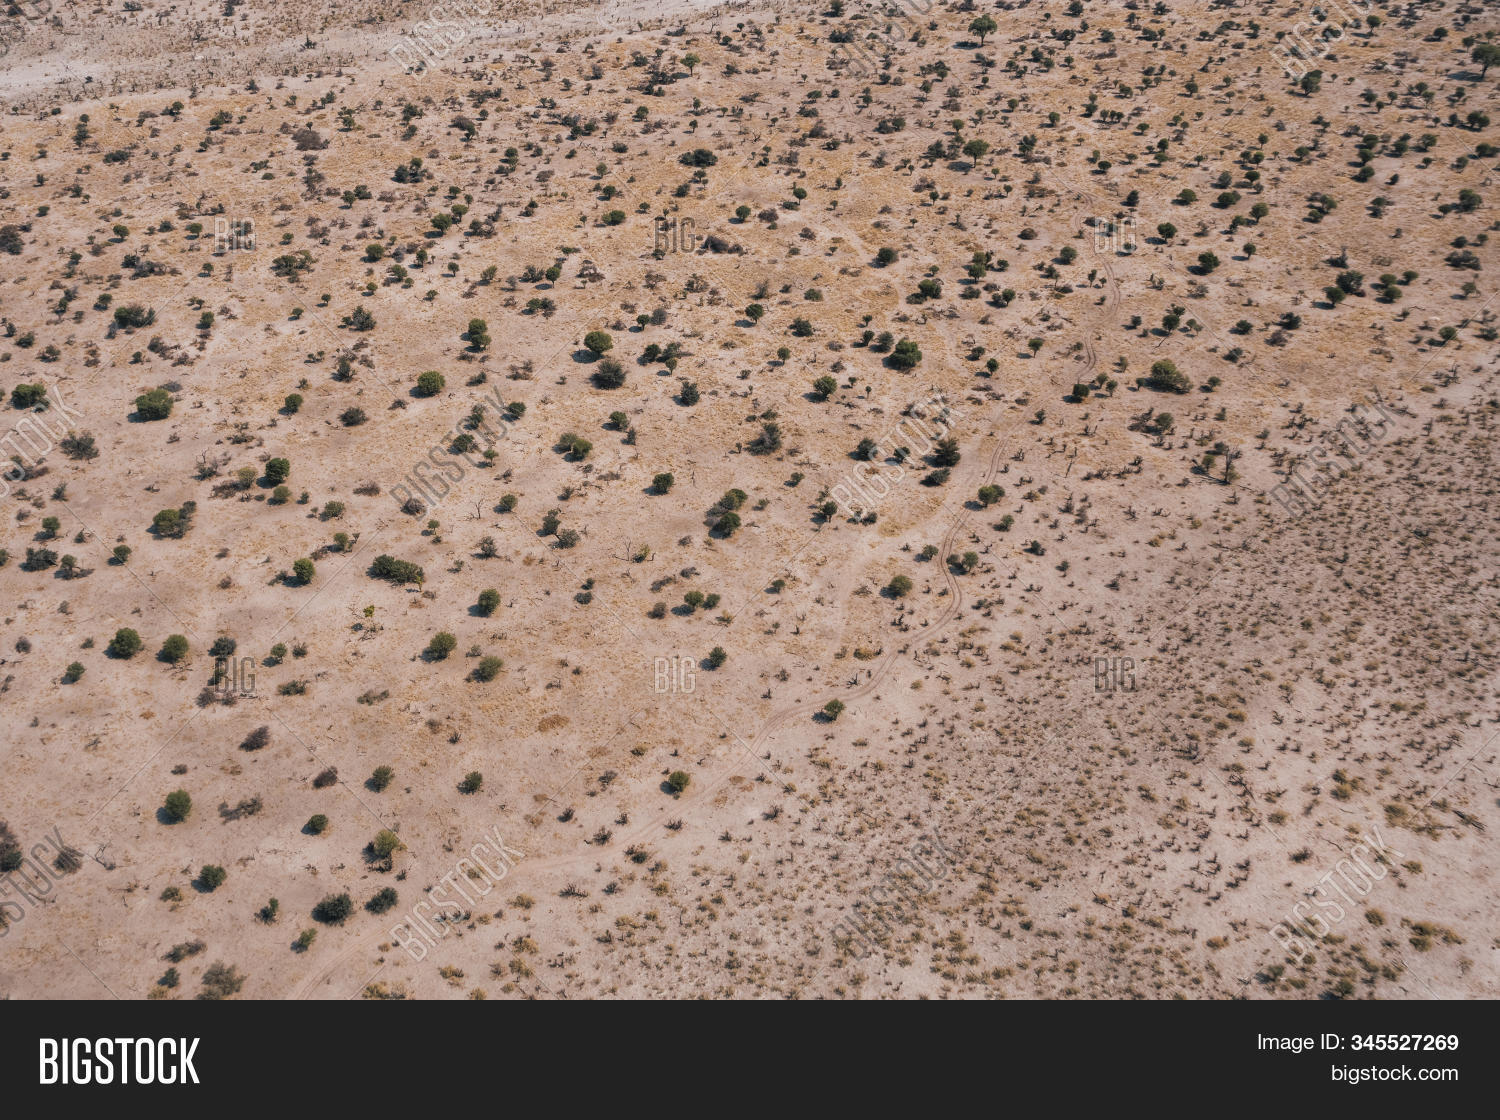 Arid Savanna Aerial Background with Bushes and Trees on an Arid Plain, an Abstract Drone Shot with Copy Space